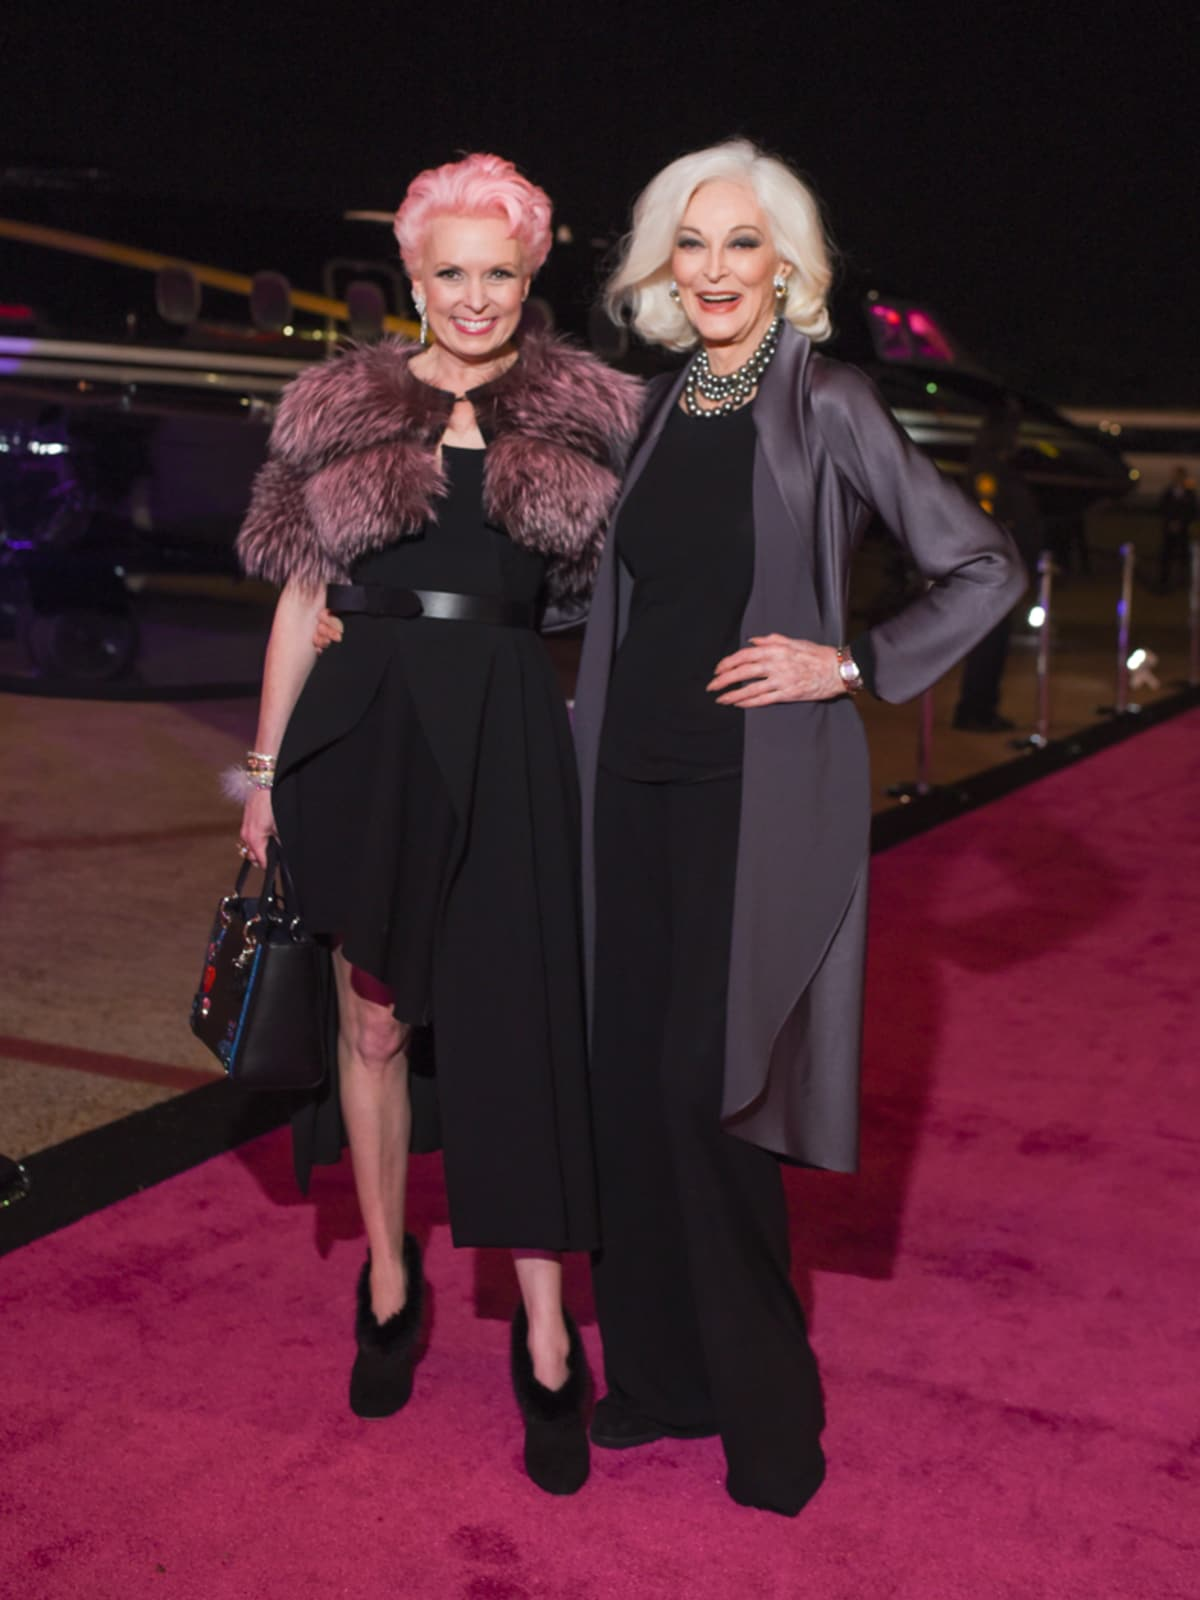 News, Heart of Fashion, Vivian Wise, Carmen Dell'Orefice, Nov. 2015